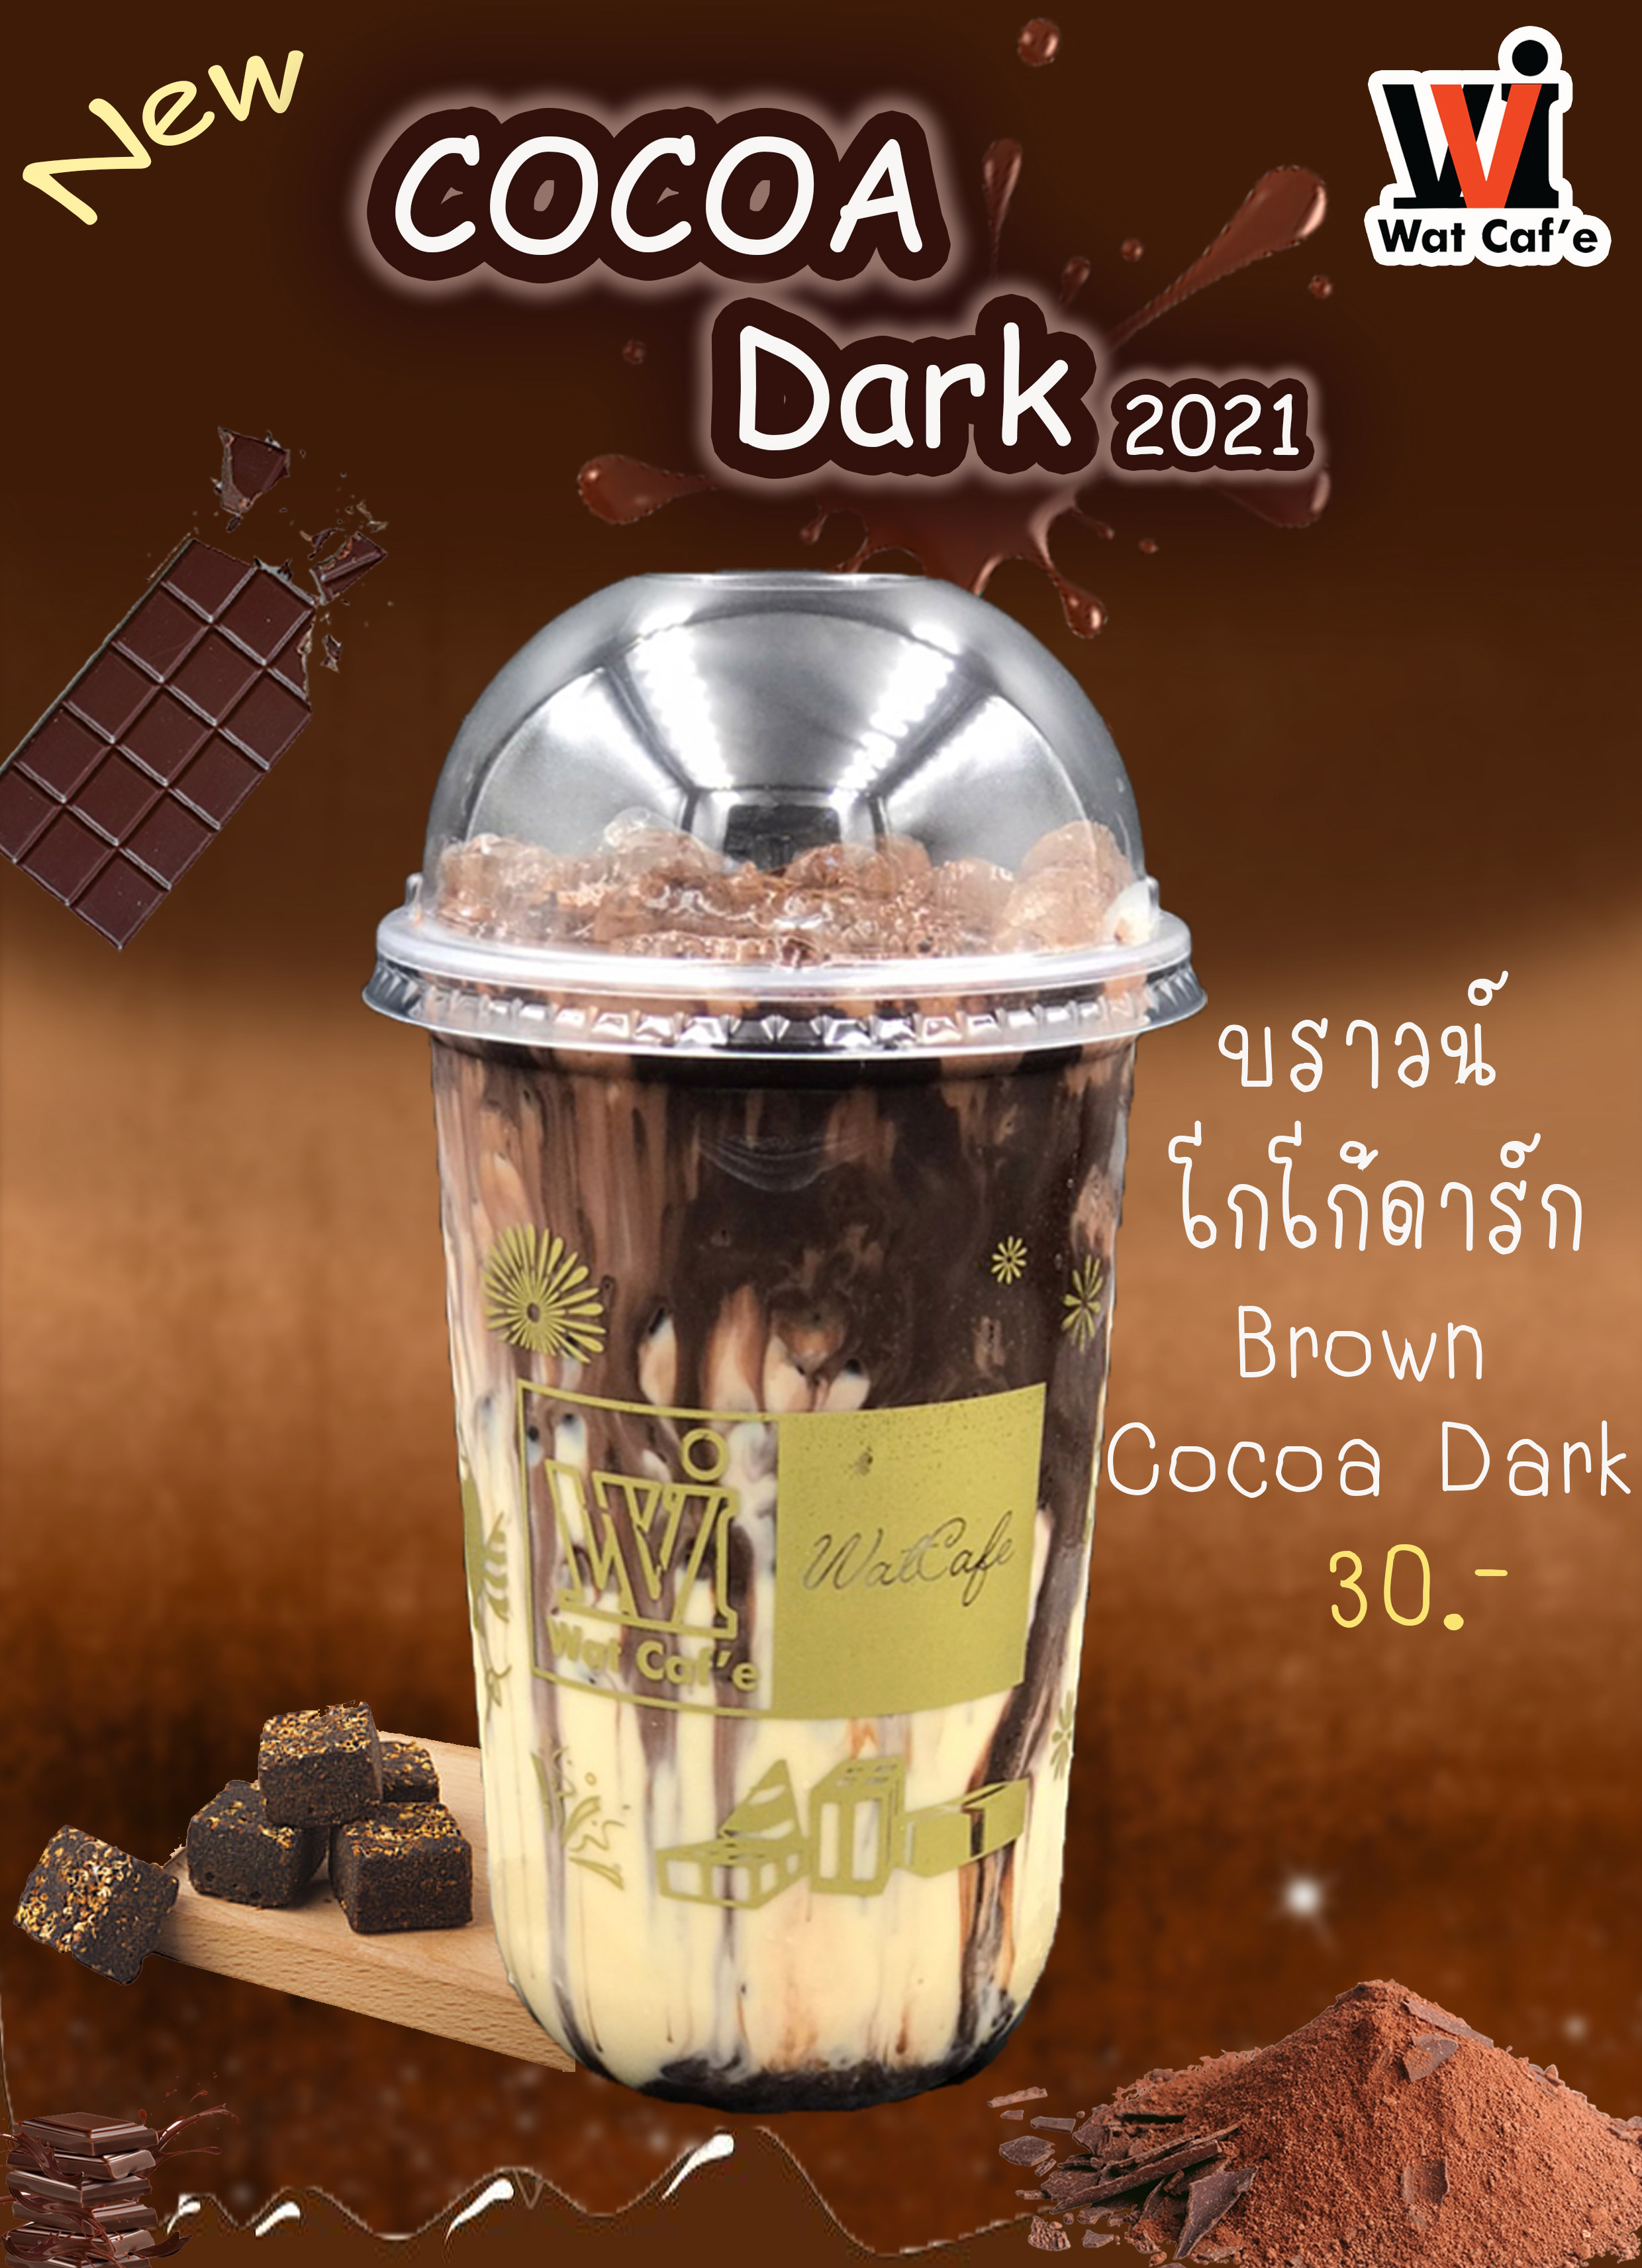 Brown Cocoa Dark